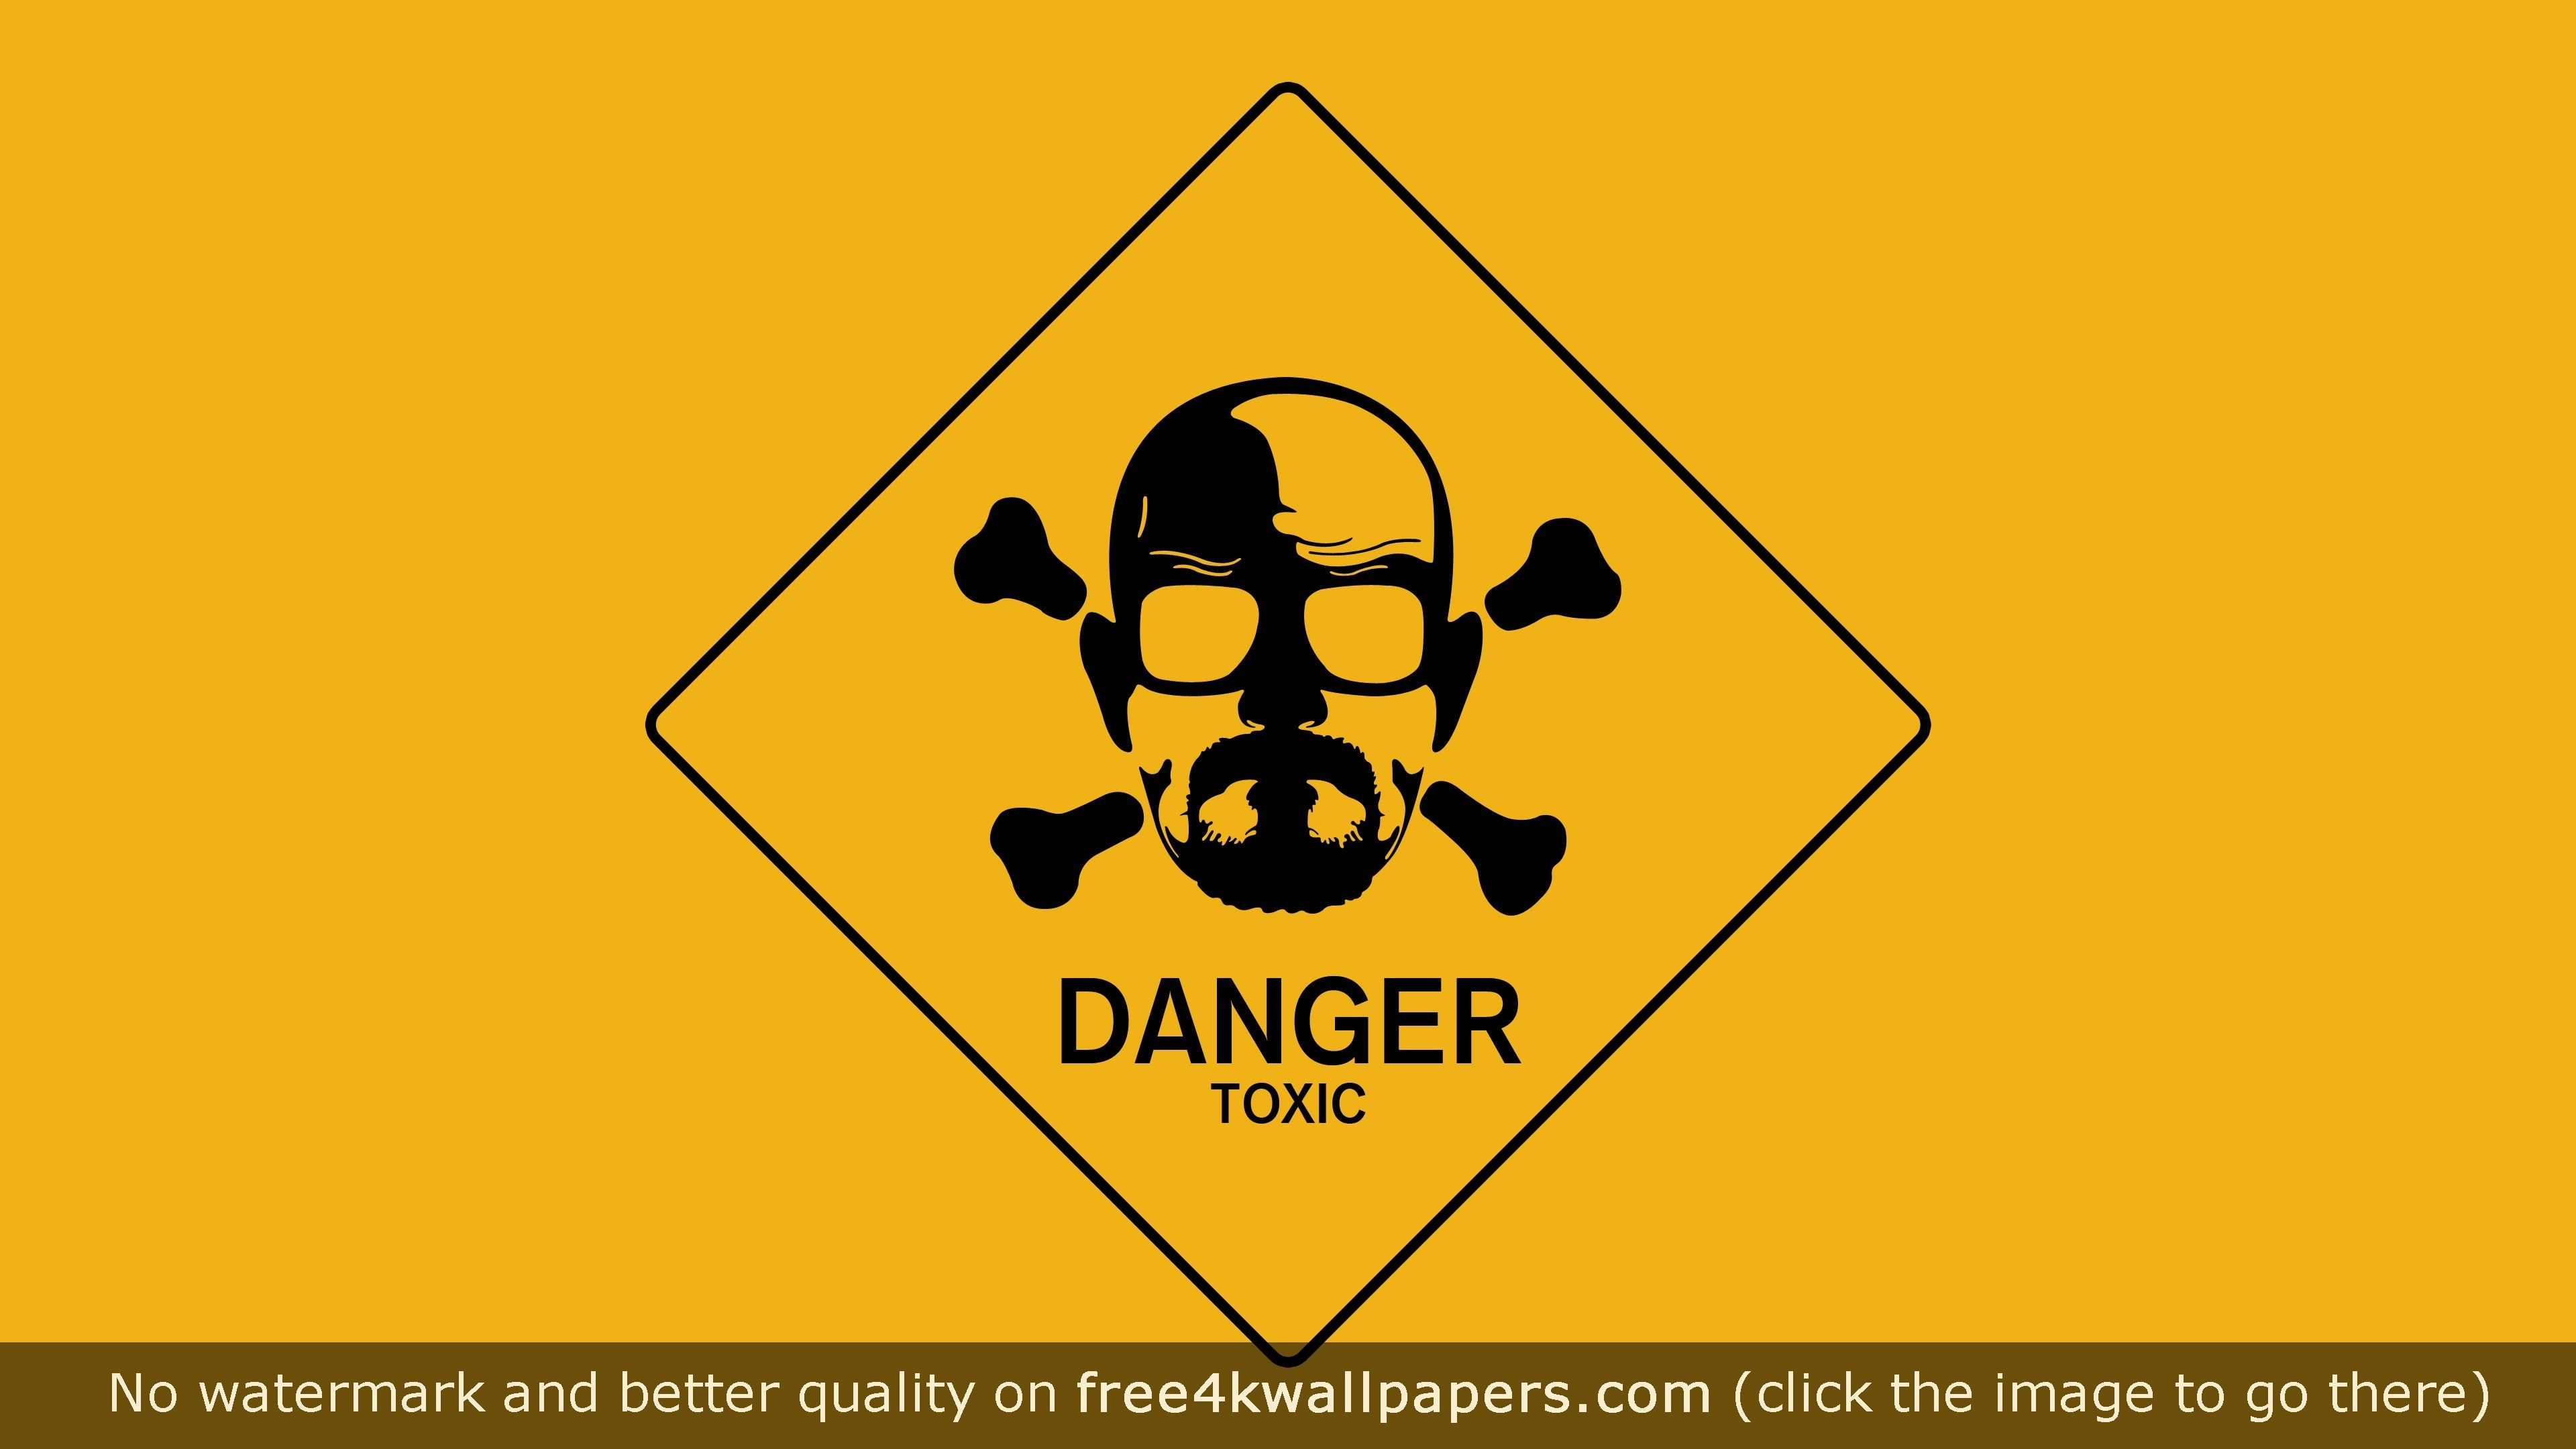 Breaking Bad Walt Danger Toxic Sign 4K or HD wallpaper for your PC, Mac or Mobile device ...